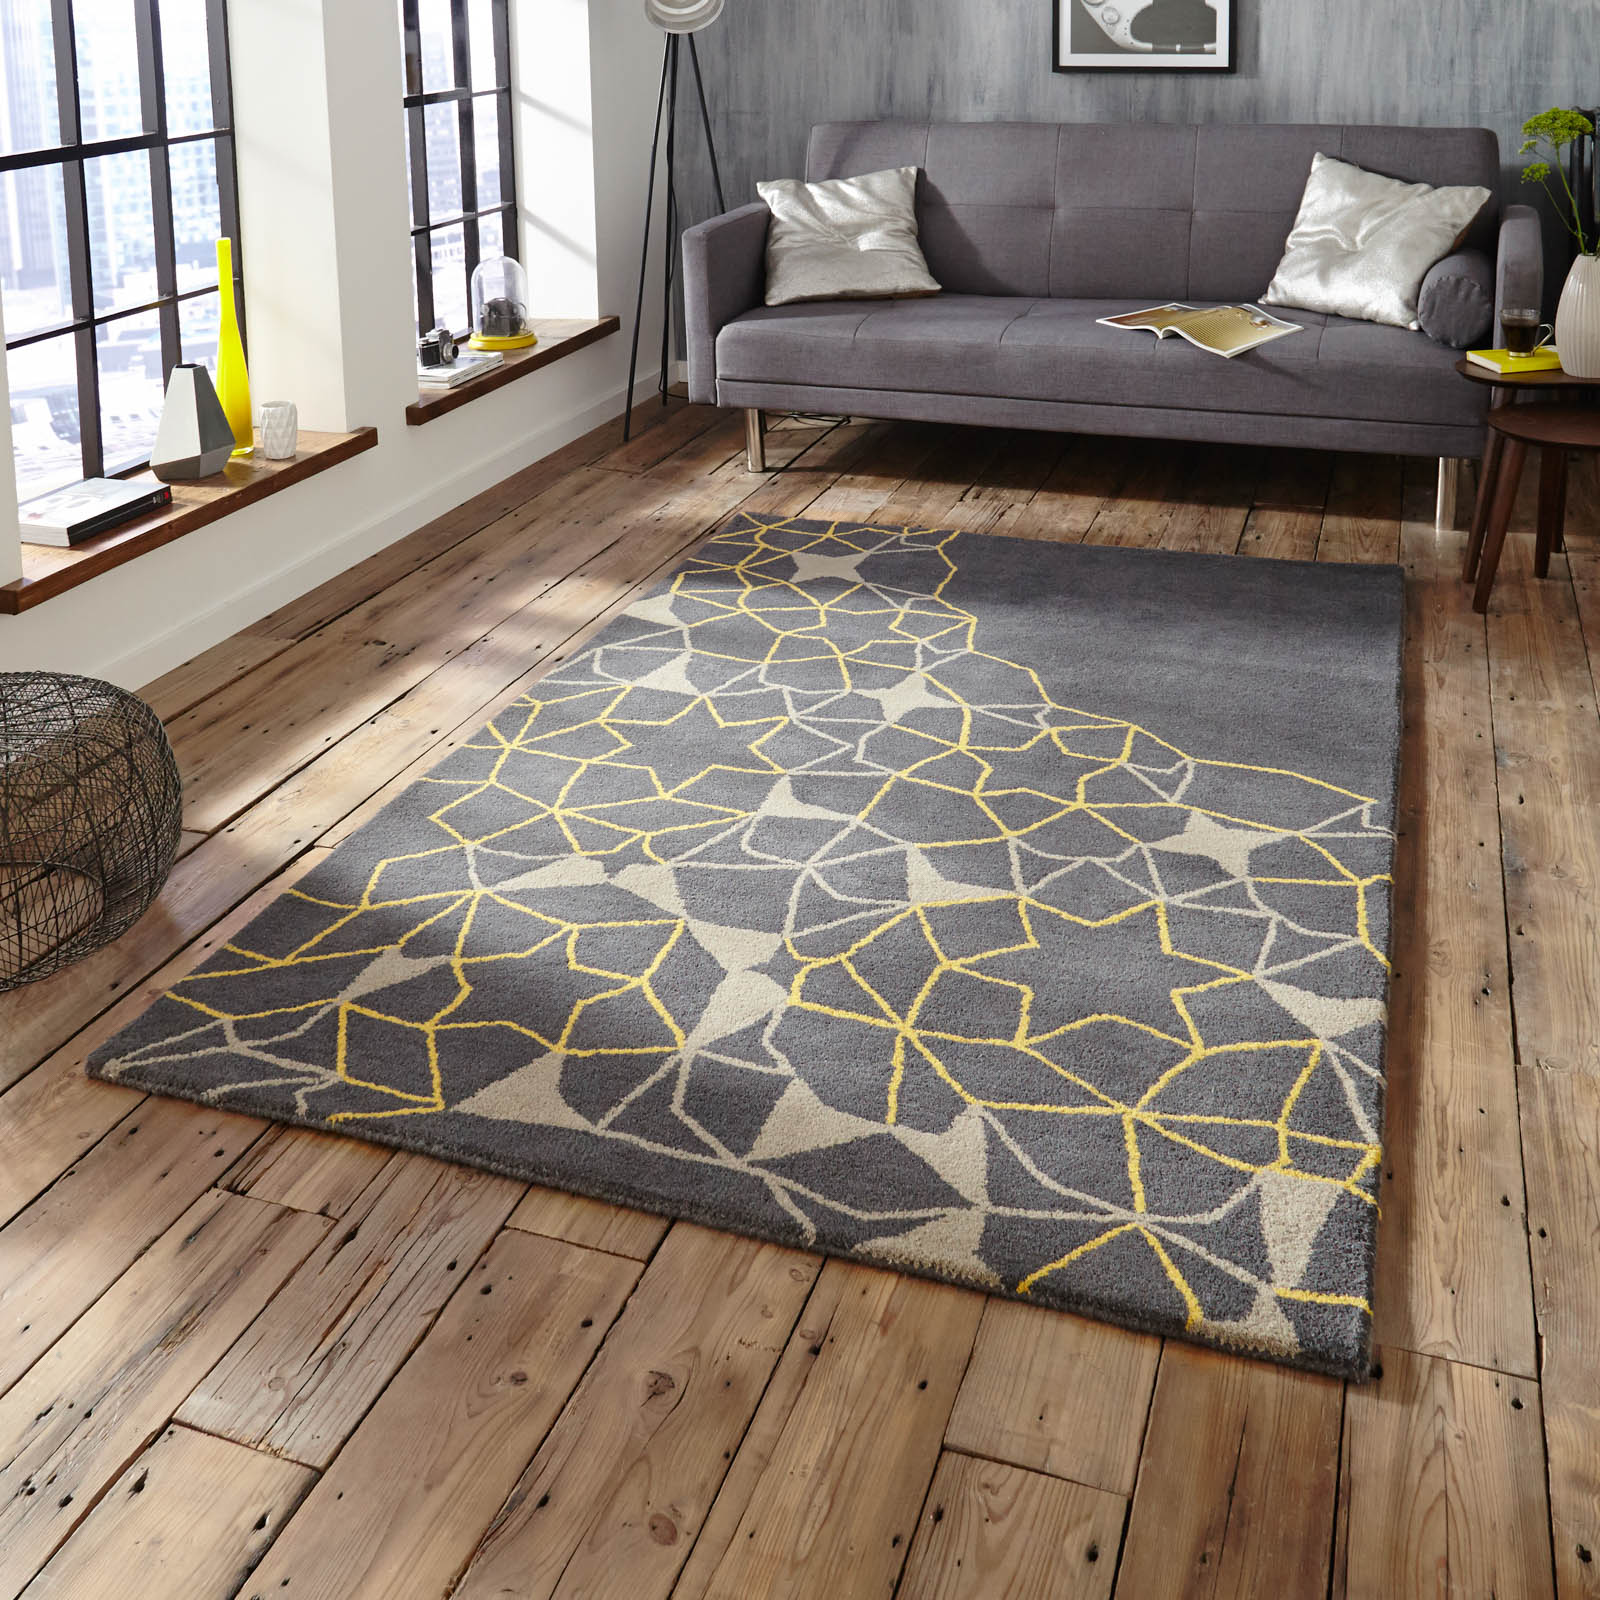 Spectrum SP37 Rugs In Grey Yellow